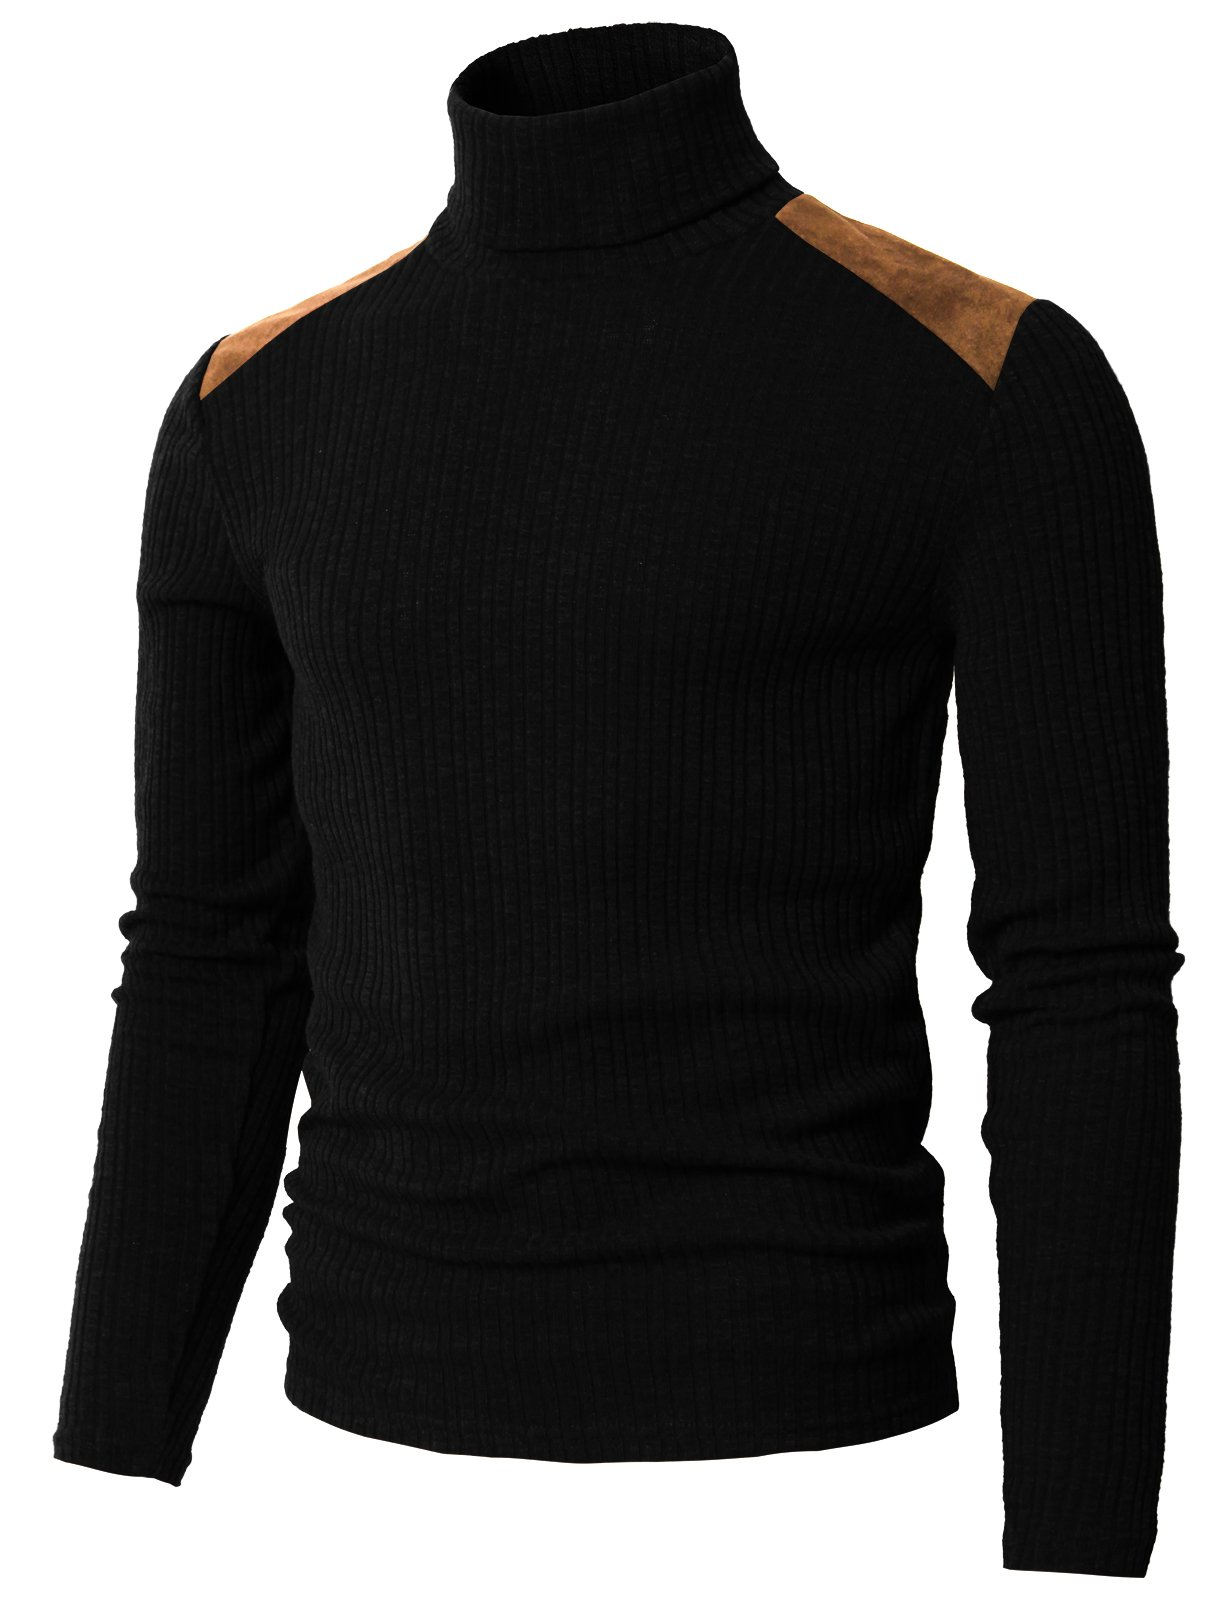 H2H Mens Light Weight Turtleneck Slim Fit Pullover Sweaters Black US L/Asia XL (CMTTL099)